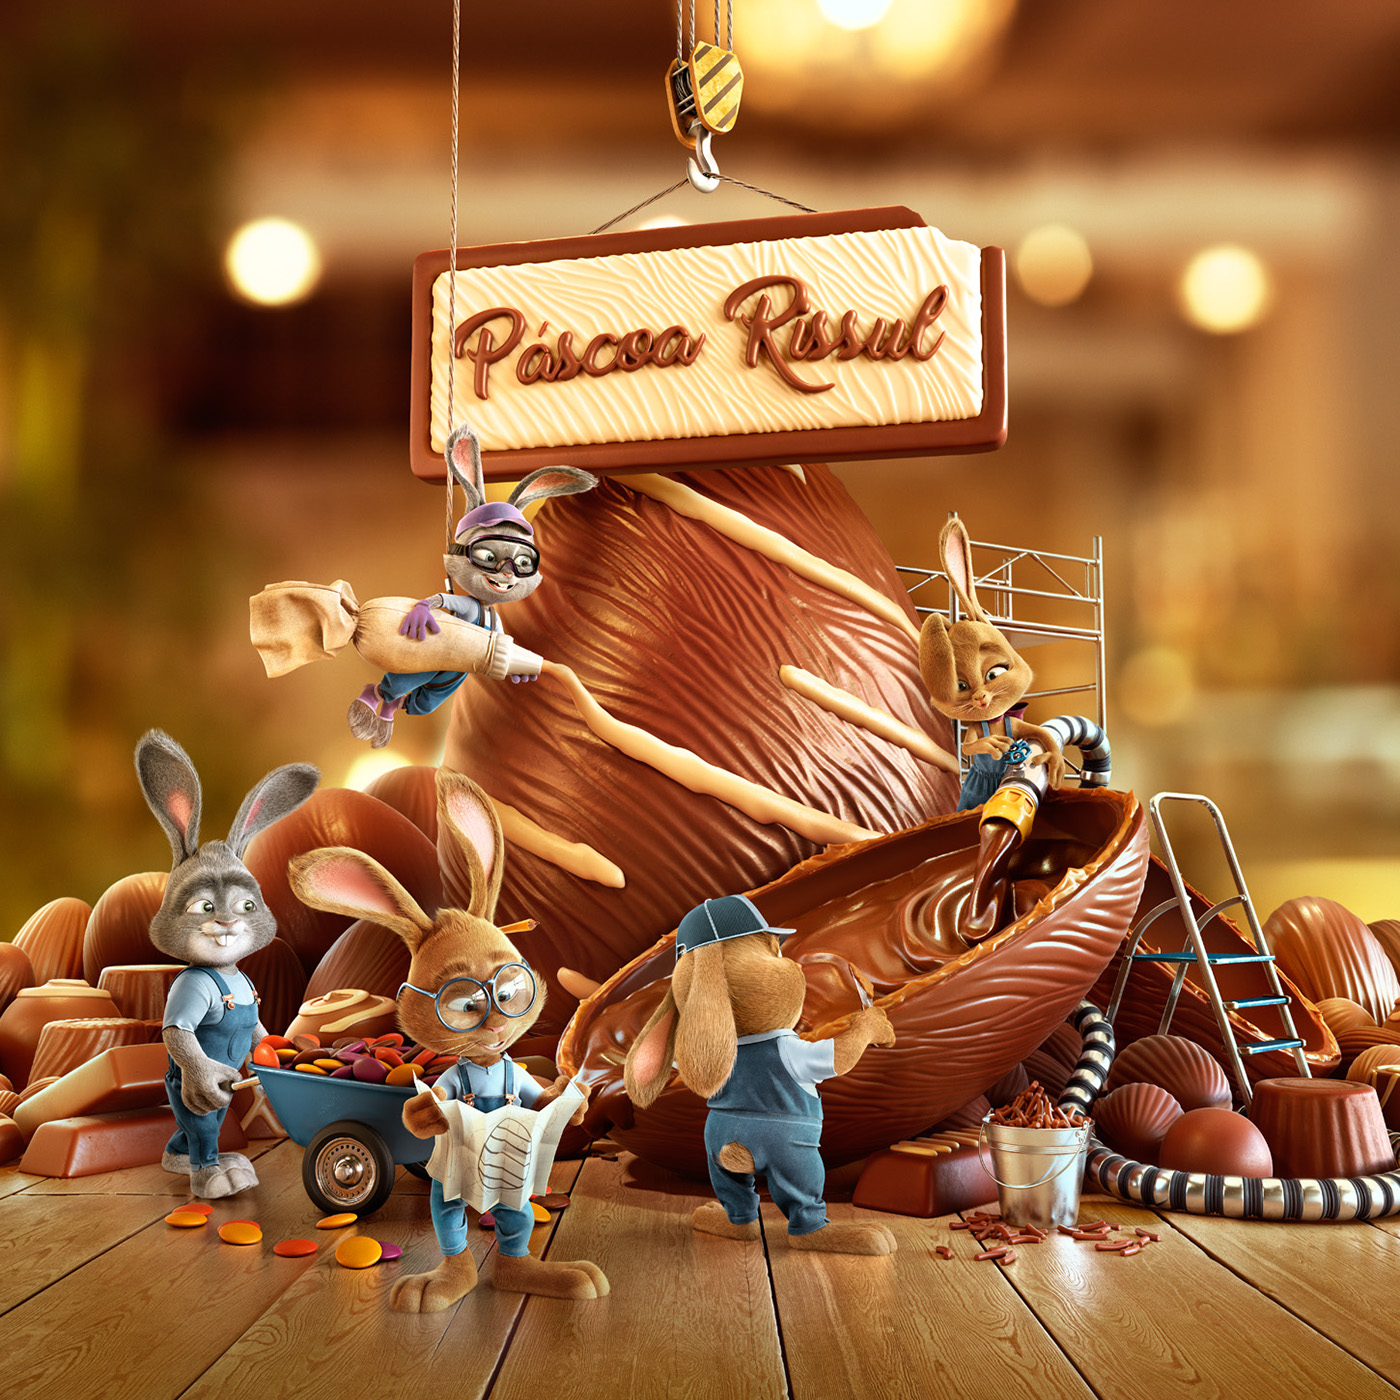 Brazilian easter advertising campaign for Rissul Supermarket